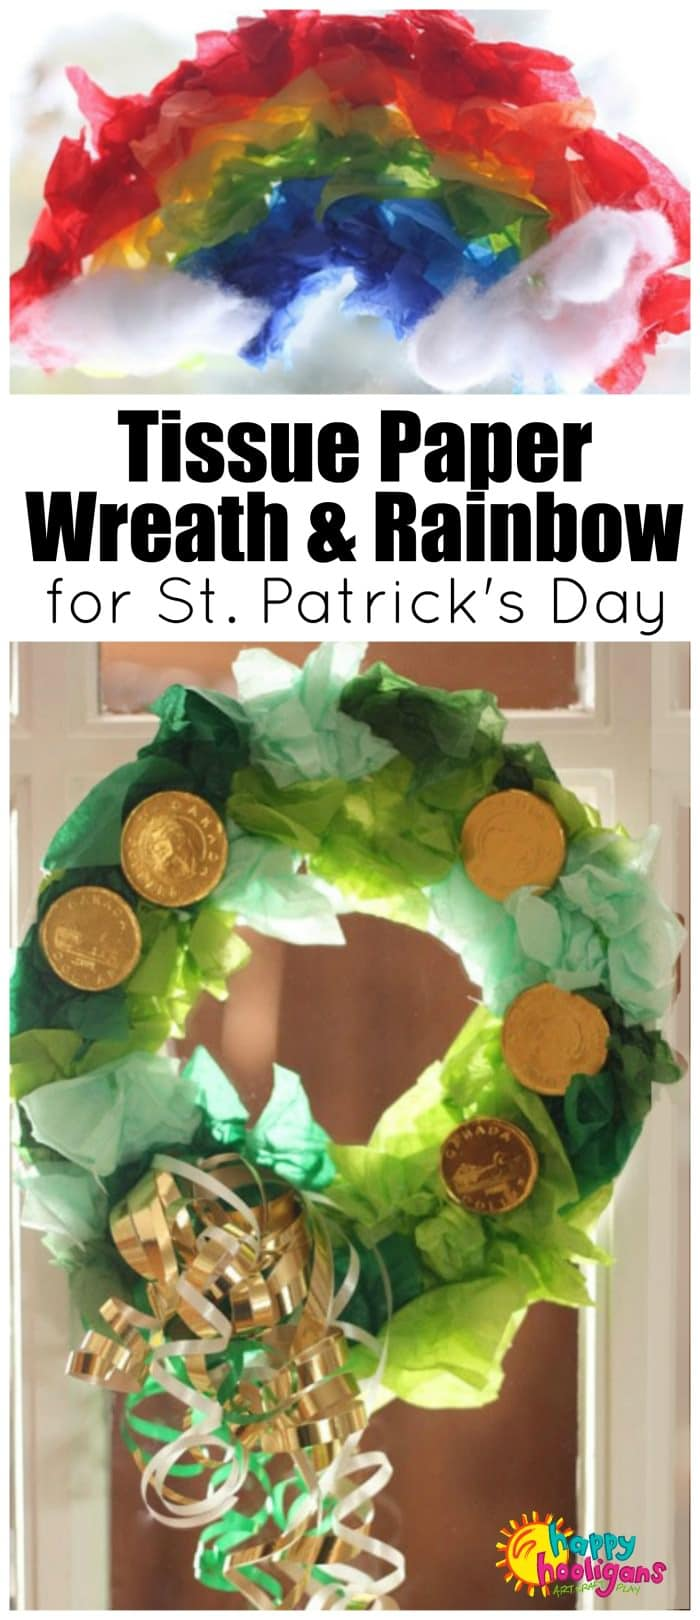 2 cute and easy St. Patrick's Day crafts for preschoolers to make: Lucky Green Wreath & tissue paper rainbow.